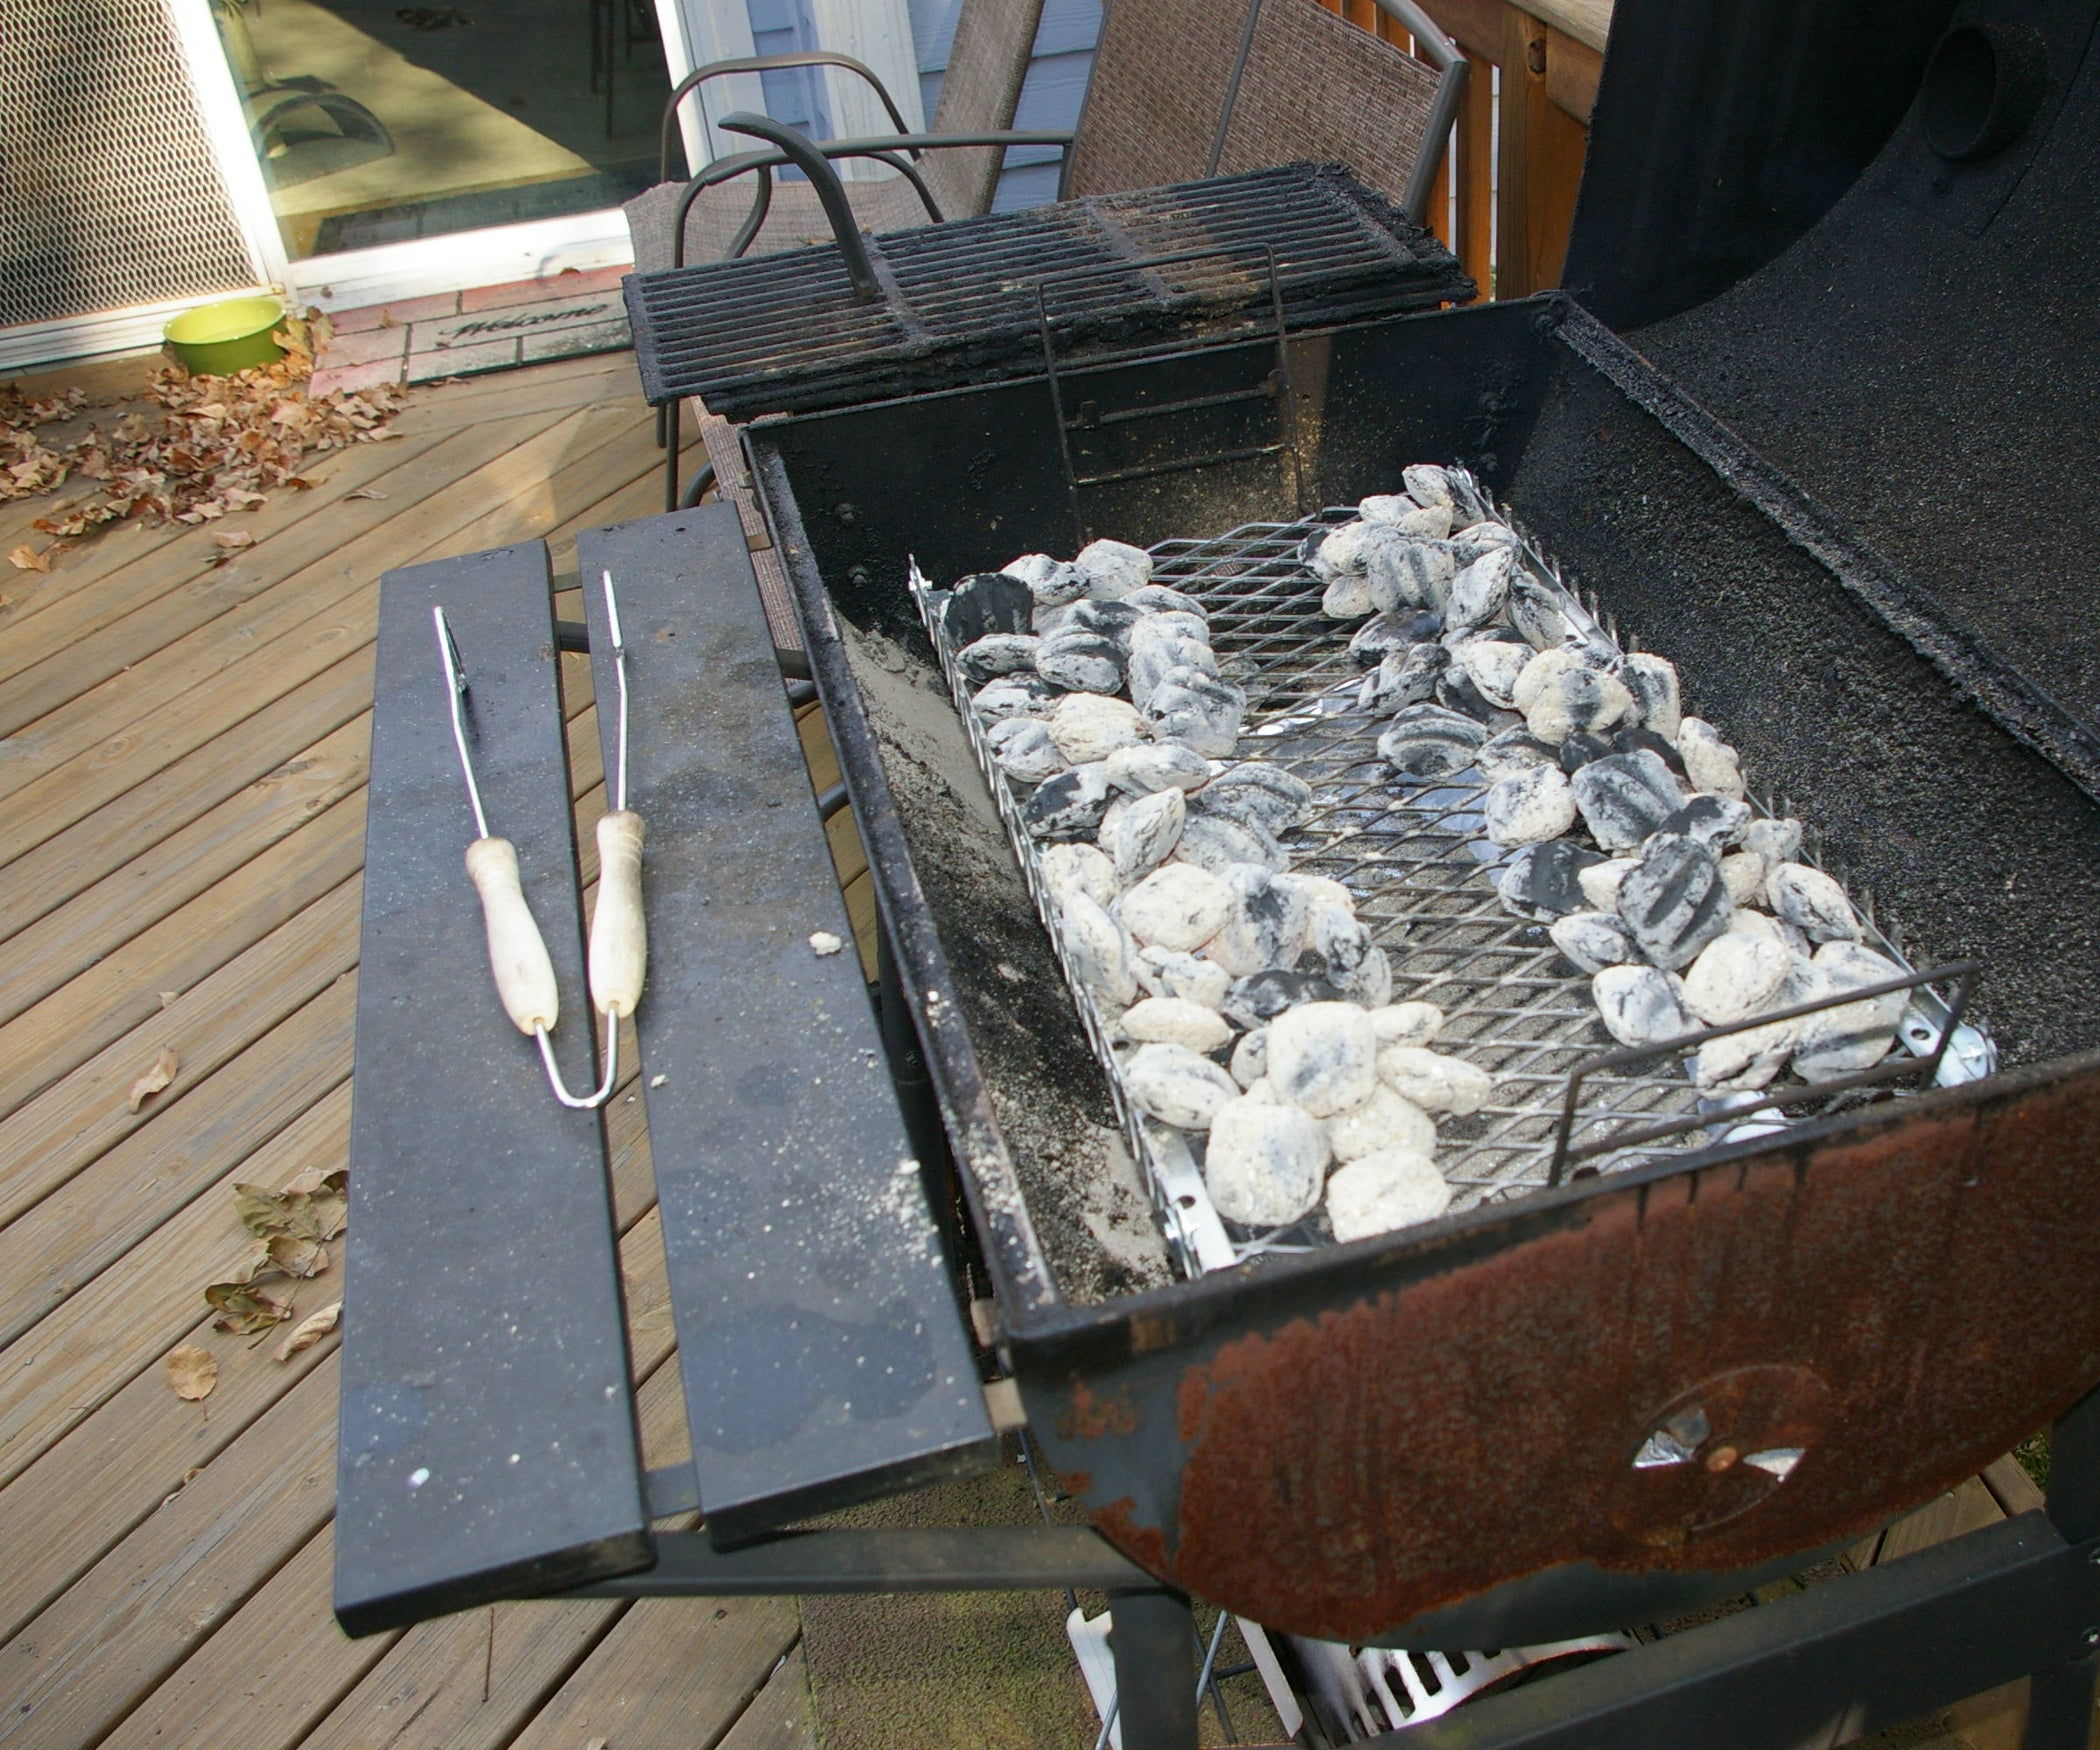 Replacement Charcoal Tray Or Pan For A Charcoal Grill: 6